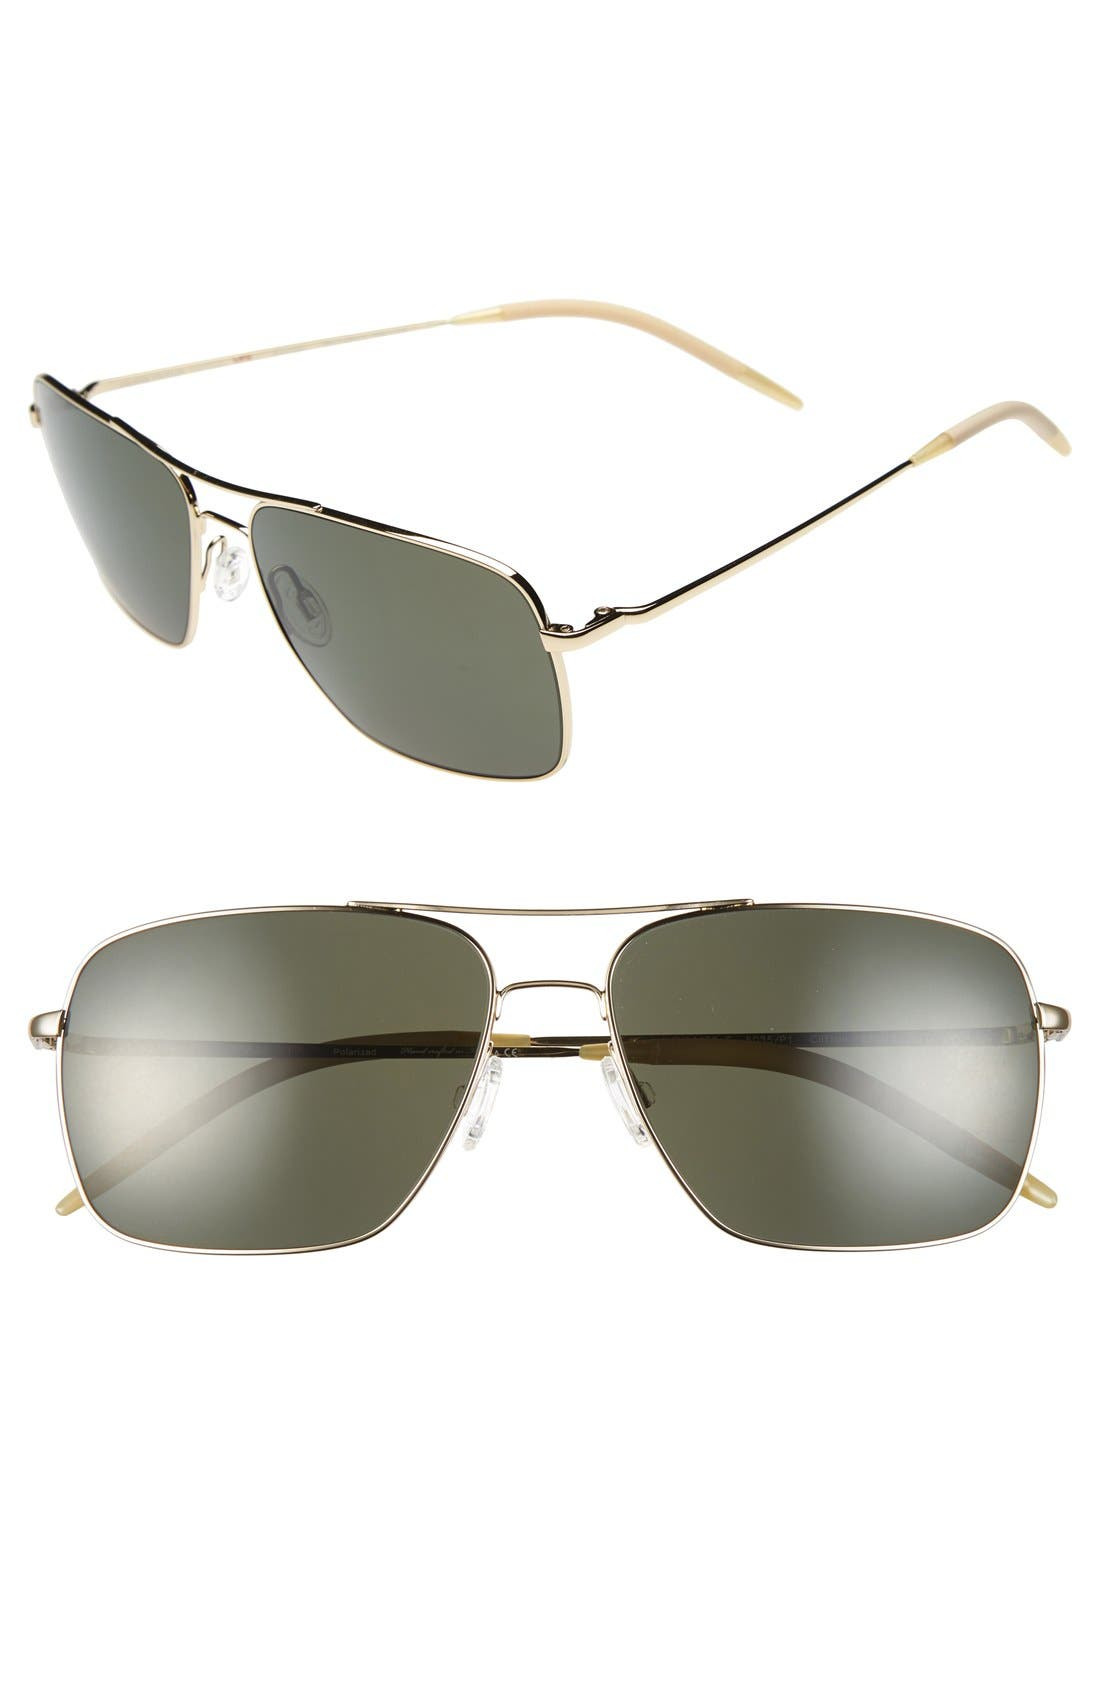 Main Image - Oliver Peoples 'Marmont' 58mm Polarized Sunglasses